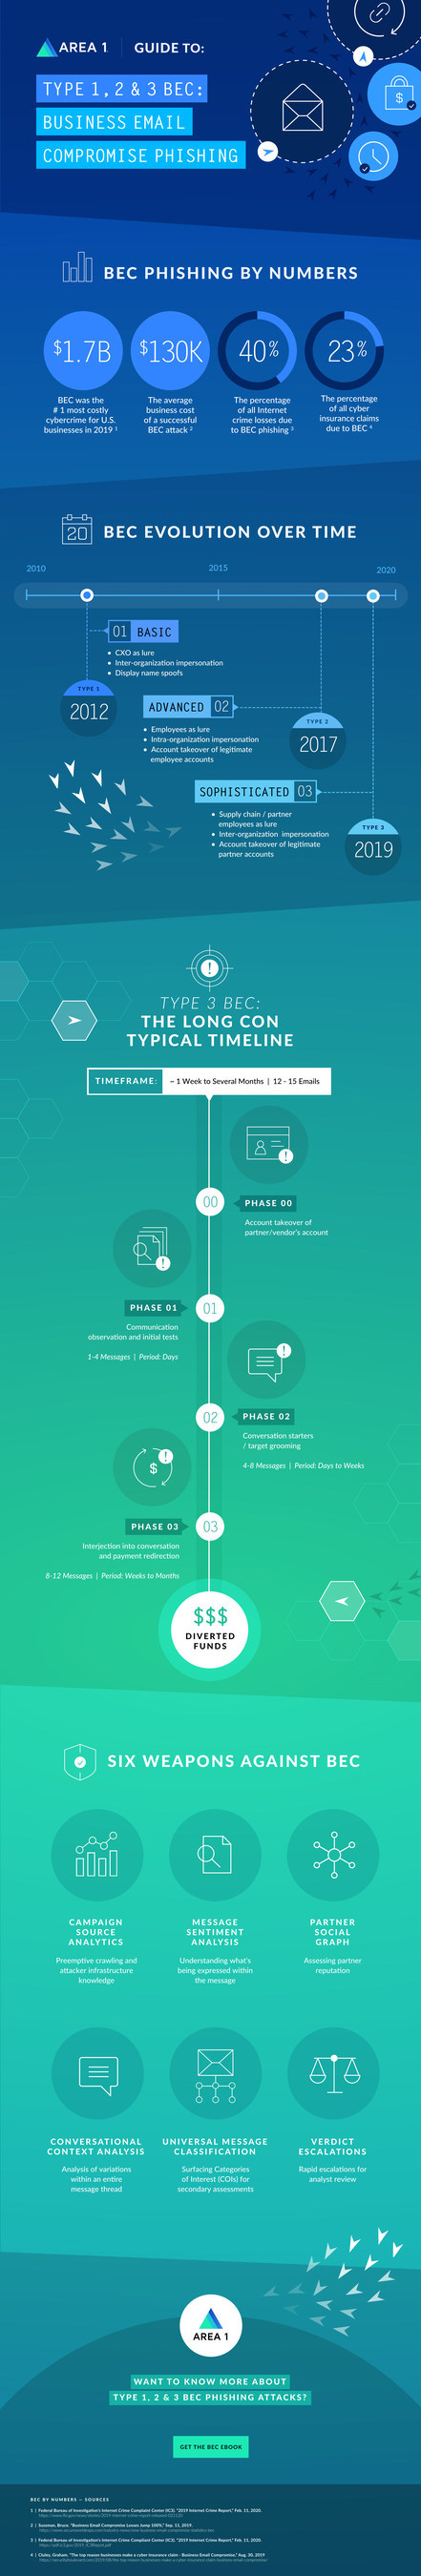 View the infographic to understand the economic consequences of Business Email Compromise (BEC) phishing attacks, how BEC has evolved since 2012, the anatomy of new and sophisticated BEC phishing attacks, and the six tools needed to block Type 1, 2 and 3 BEC phishing attacks.